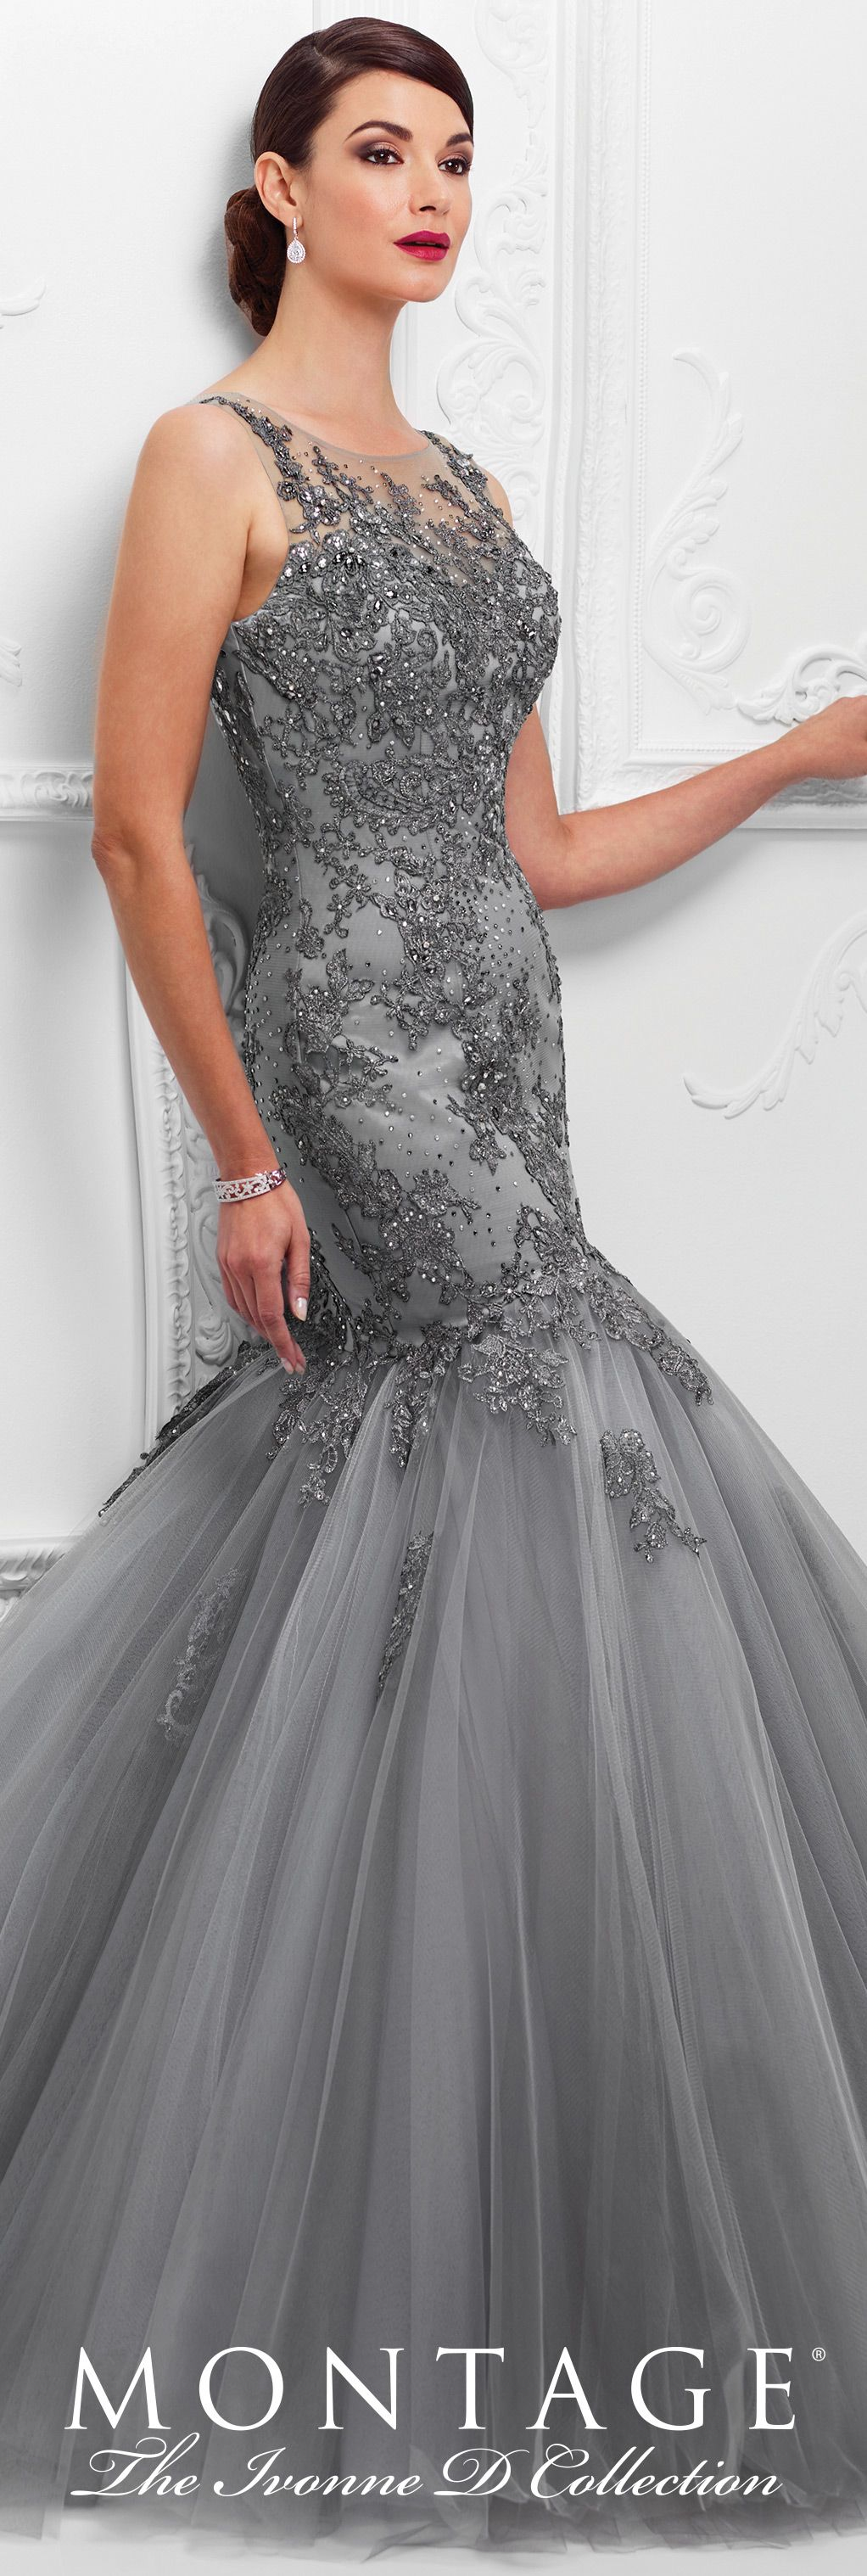 117D74 | Mermaid evening dresses, Formal evening gowns and Mermaid